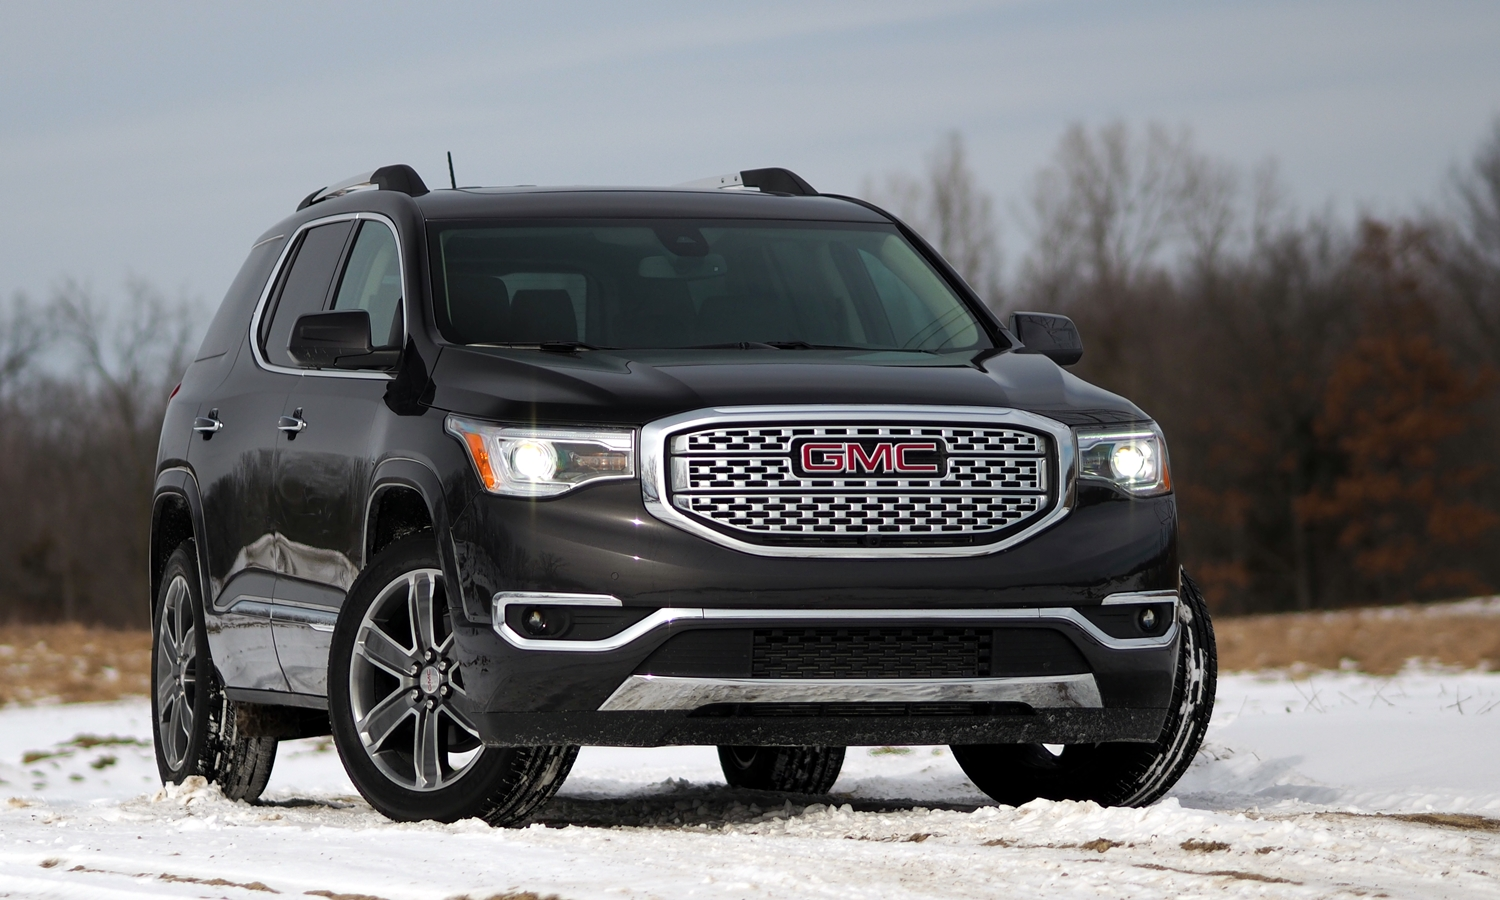 GMC Acadia Photos: 2017 GMC Acadia front angle view 1